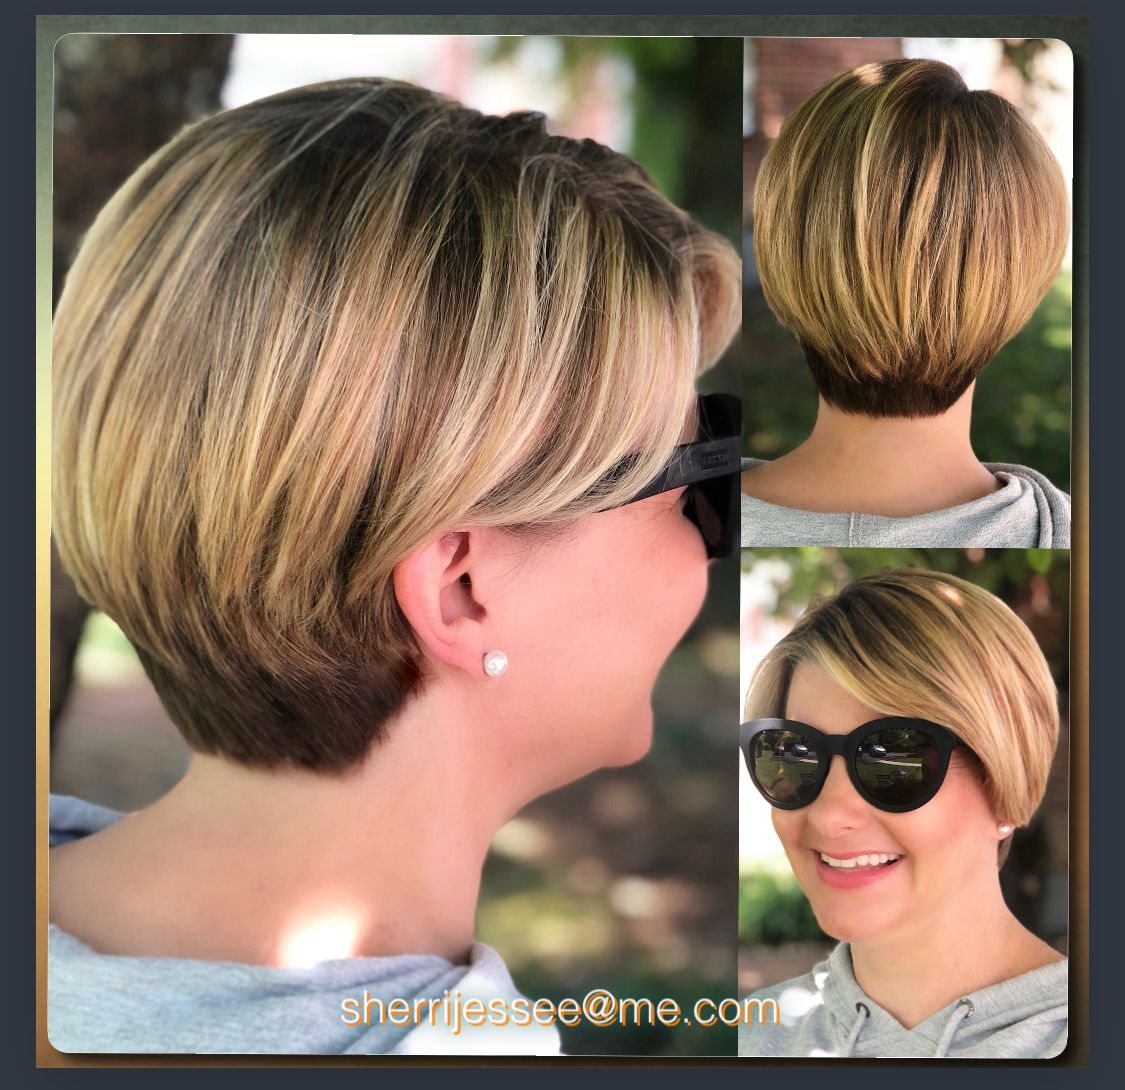 Beautiful balayage handpainted blonde shorthair hair in